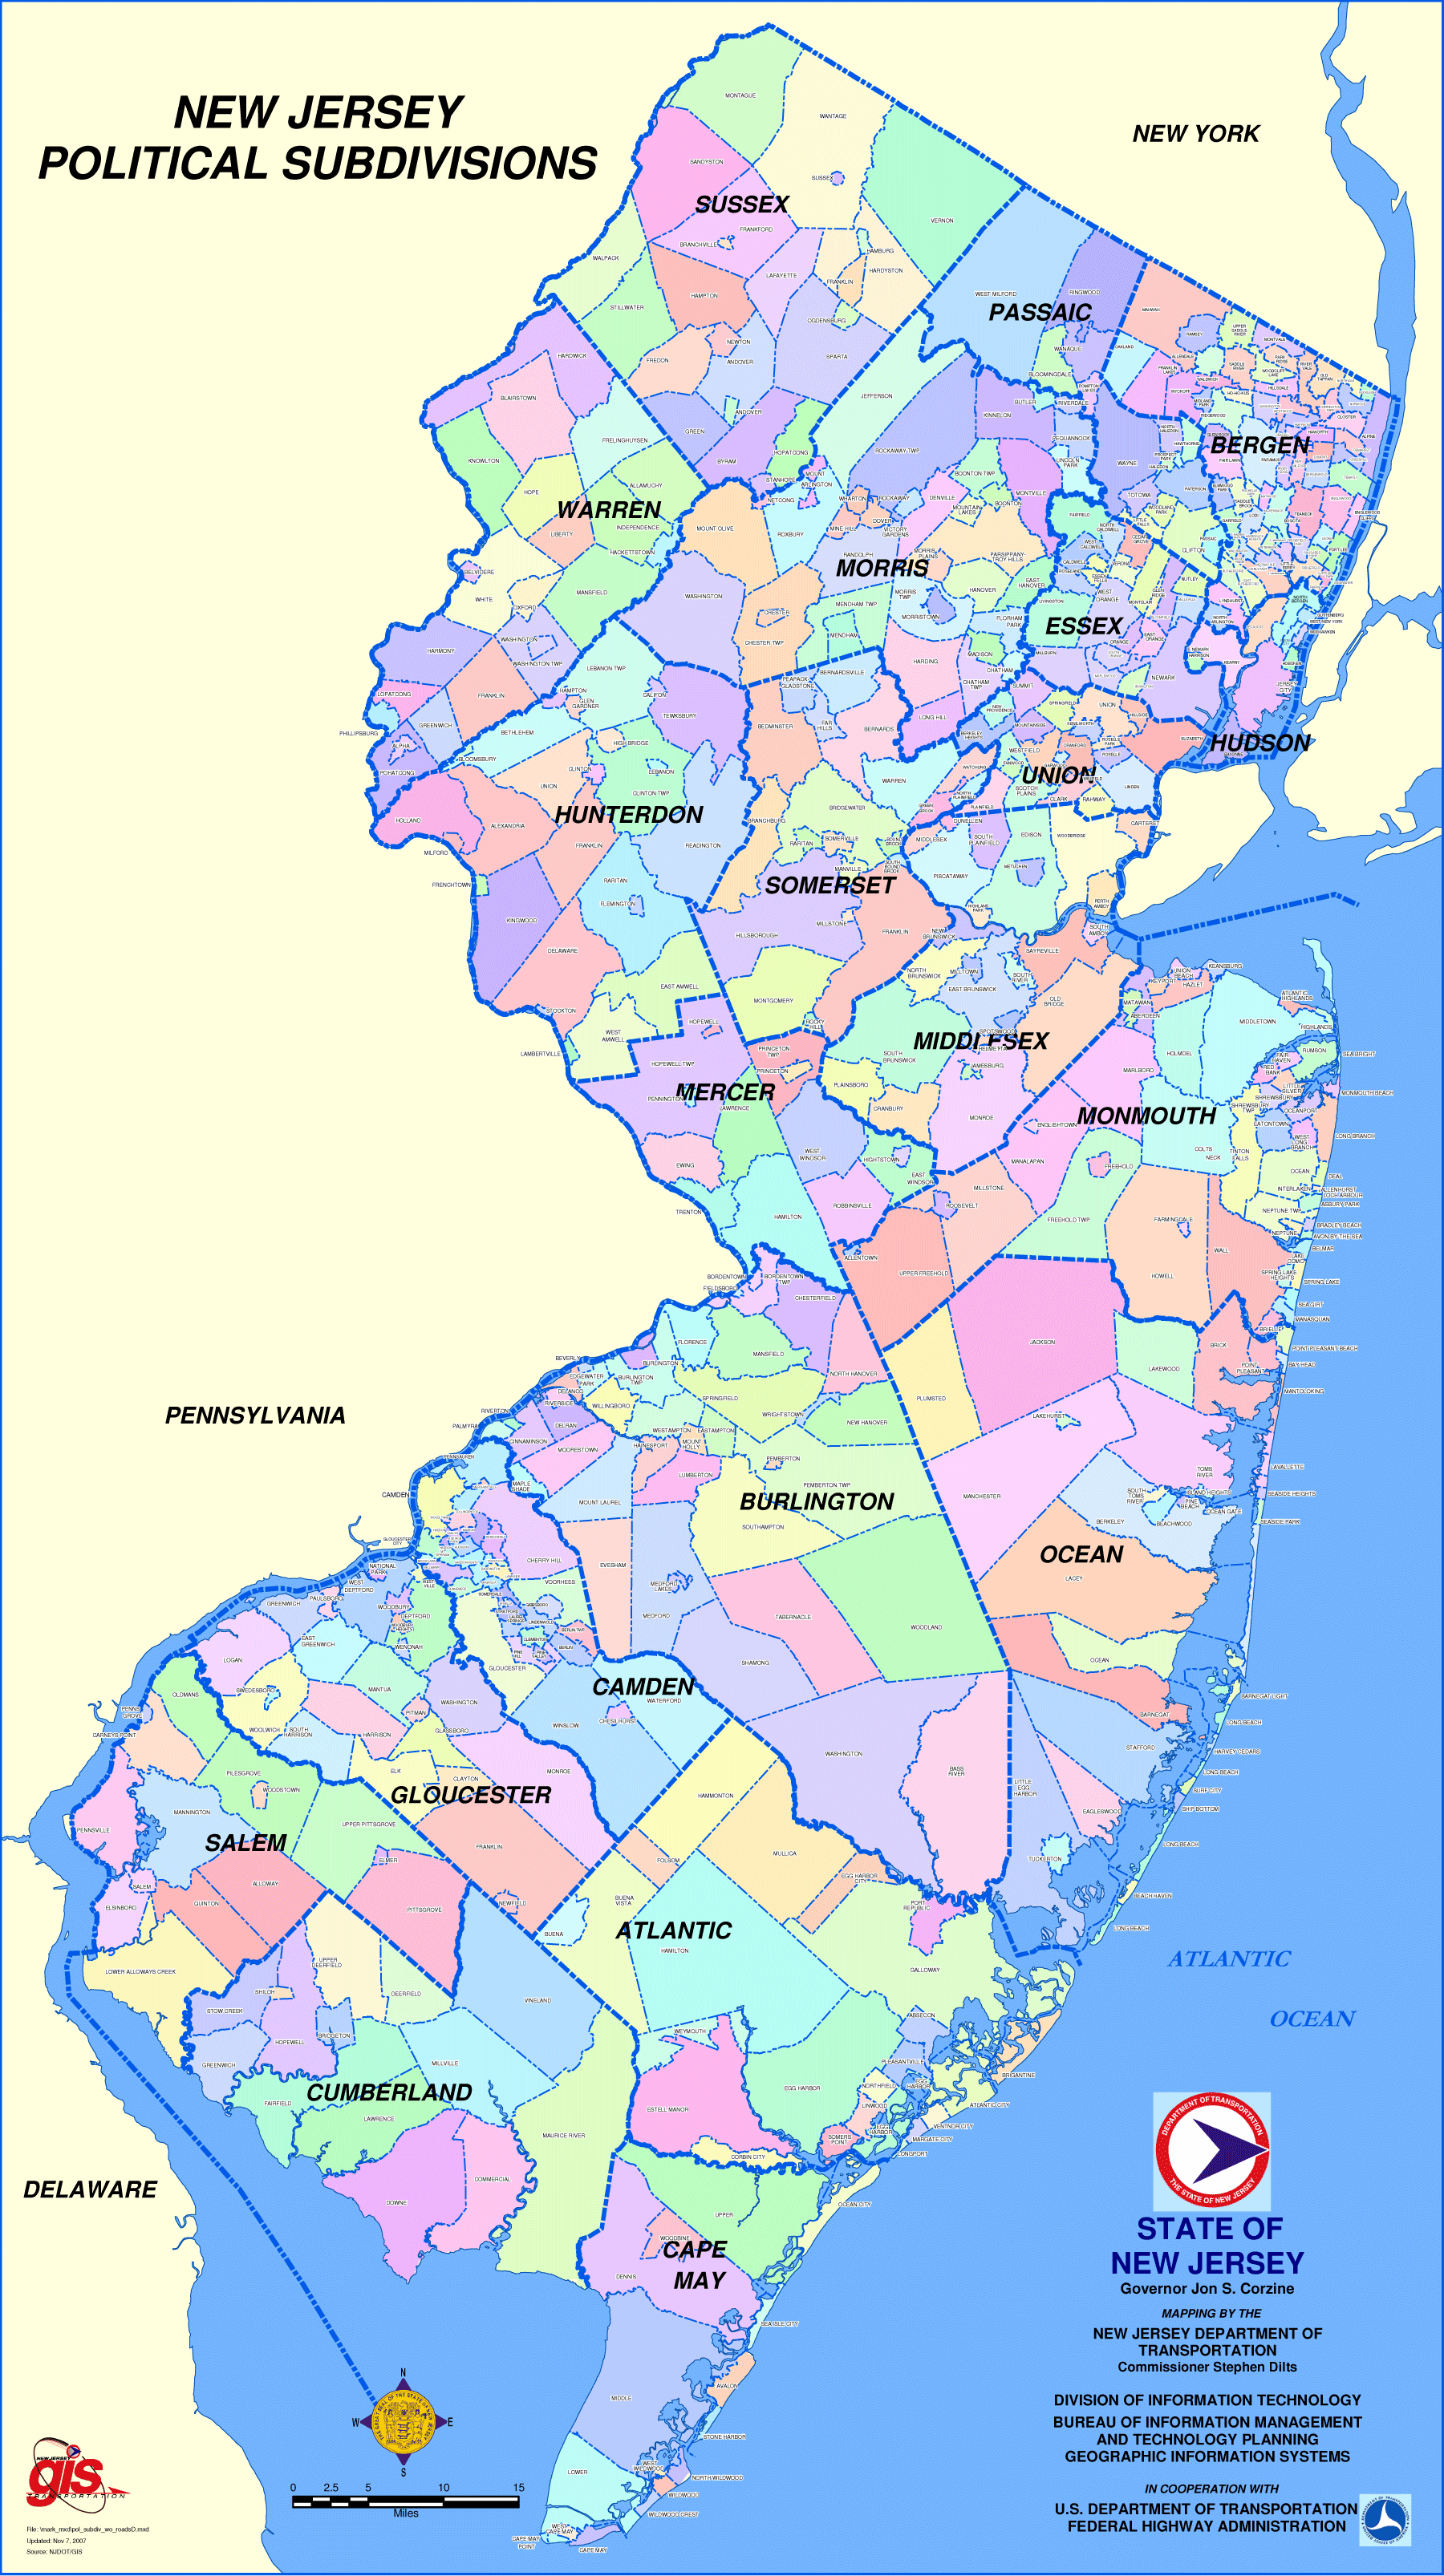 Map Of New Jersey Towns New Jersey Political Subdivisions Map • Mapsof.net